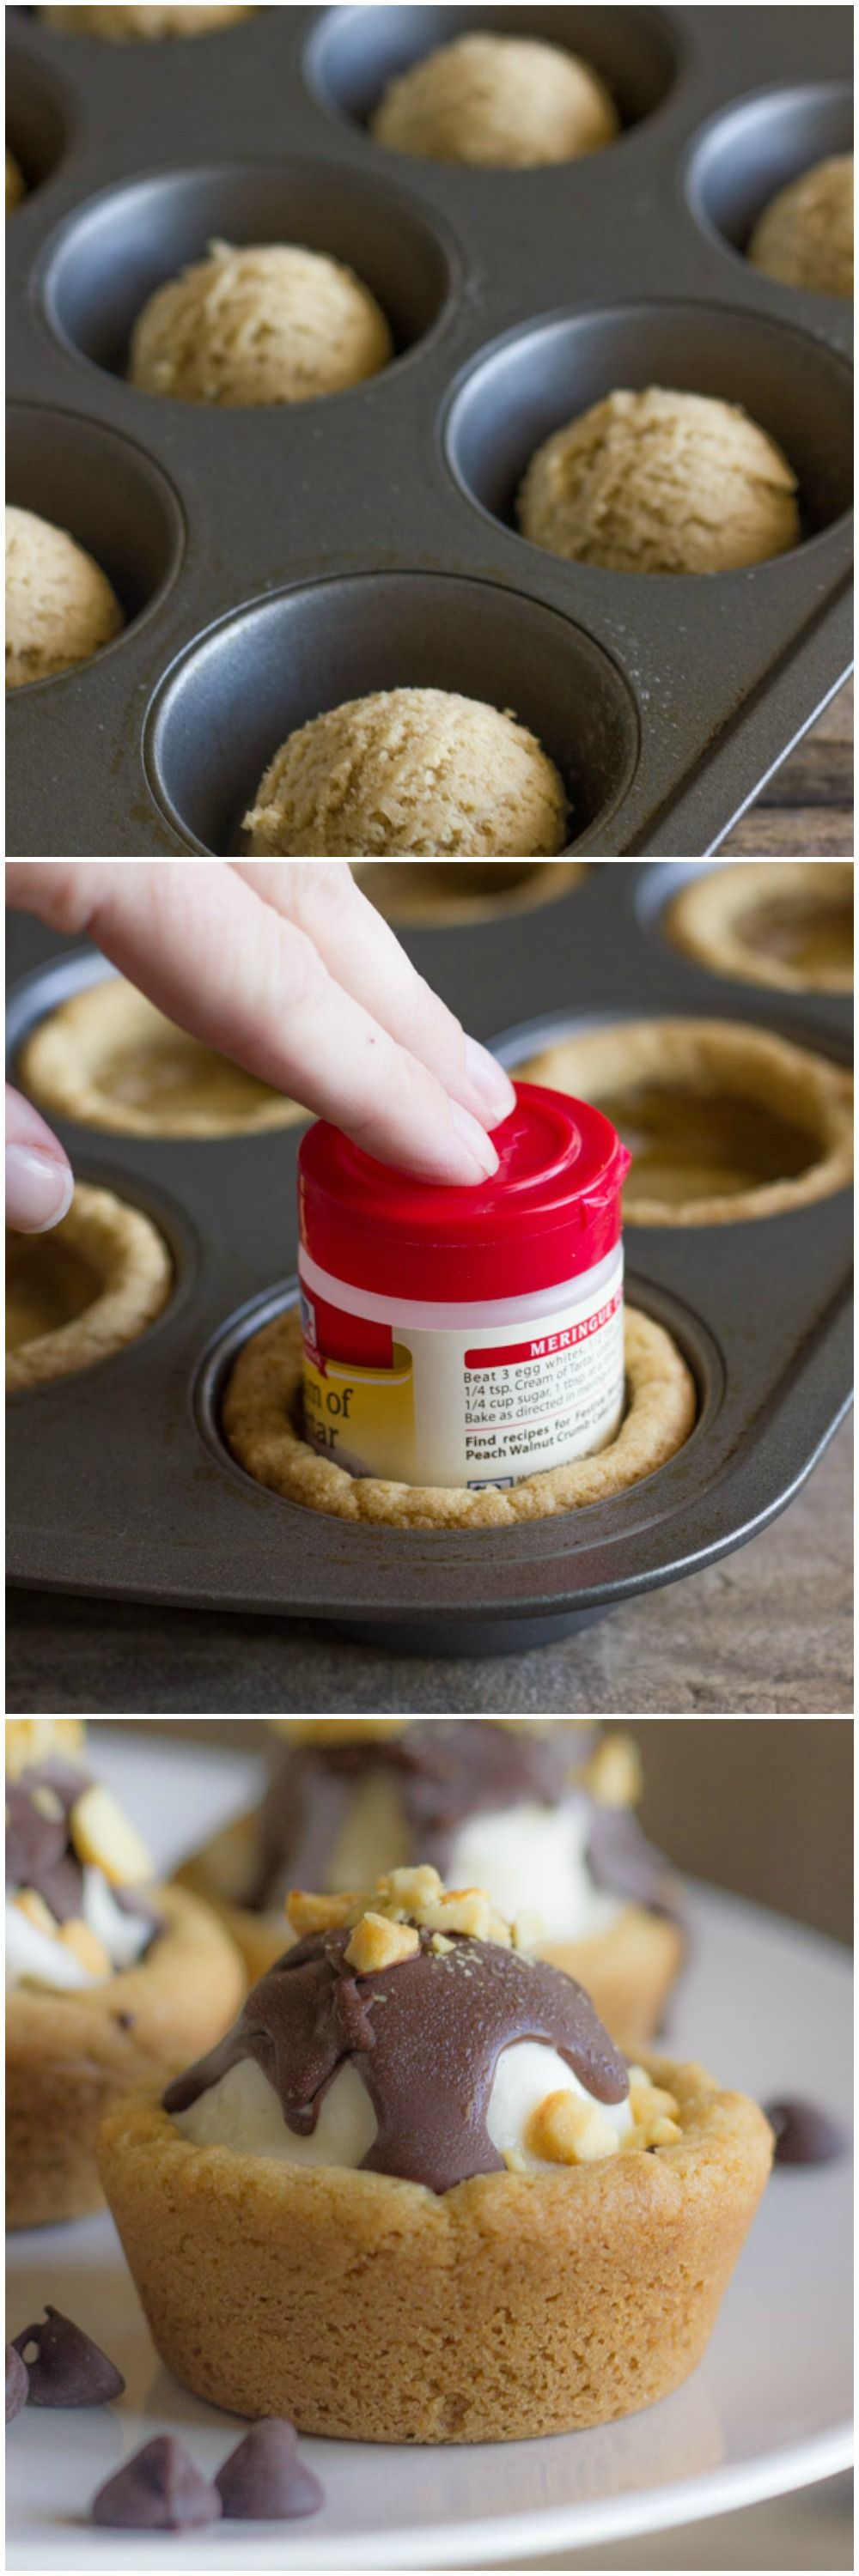 Cute Little Cookie Cups Filled With Ice Cream And Topped With Homemade Magic Shell Great For The Holidays